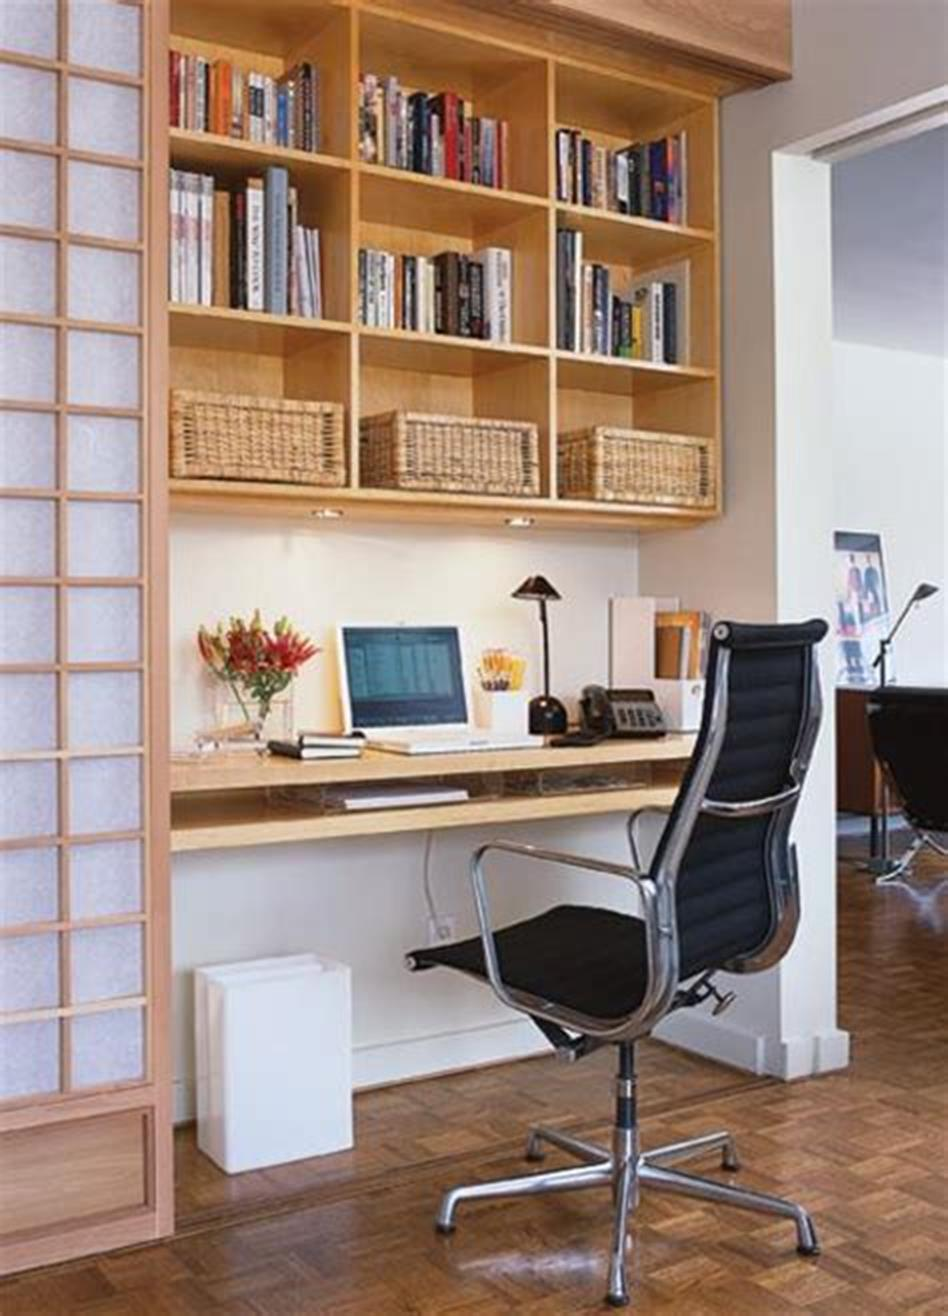 50 Best Small Space Office Decorating Ideas On a Budget 2019 27